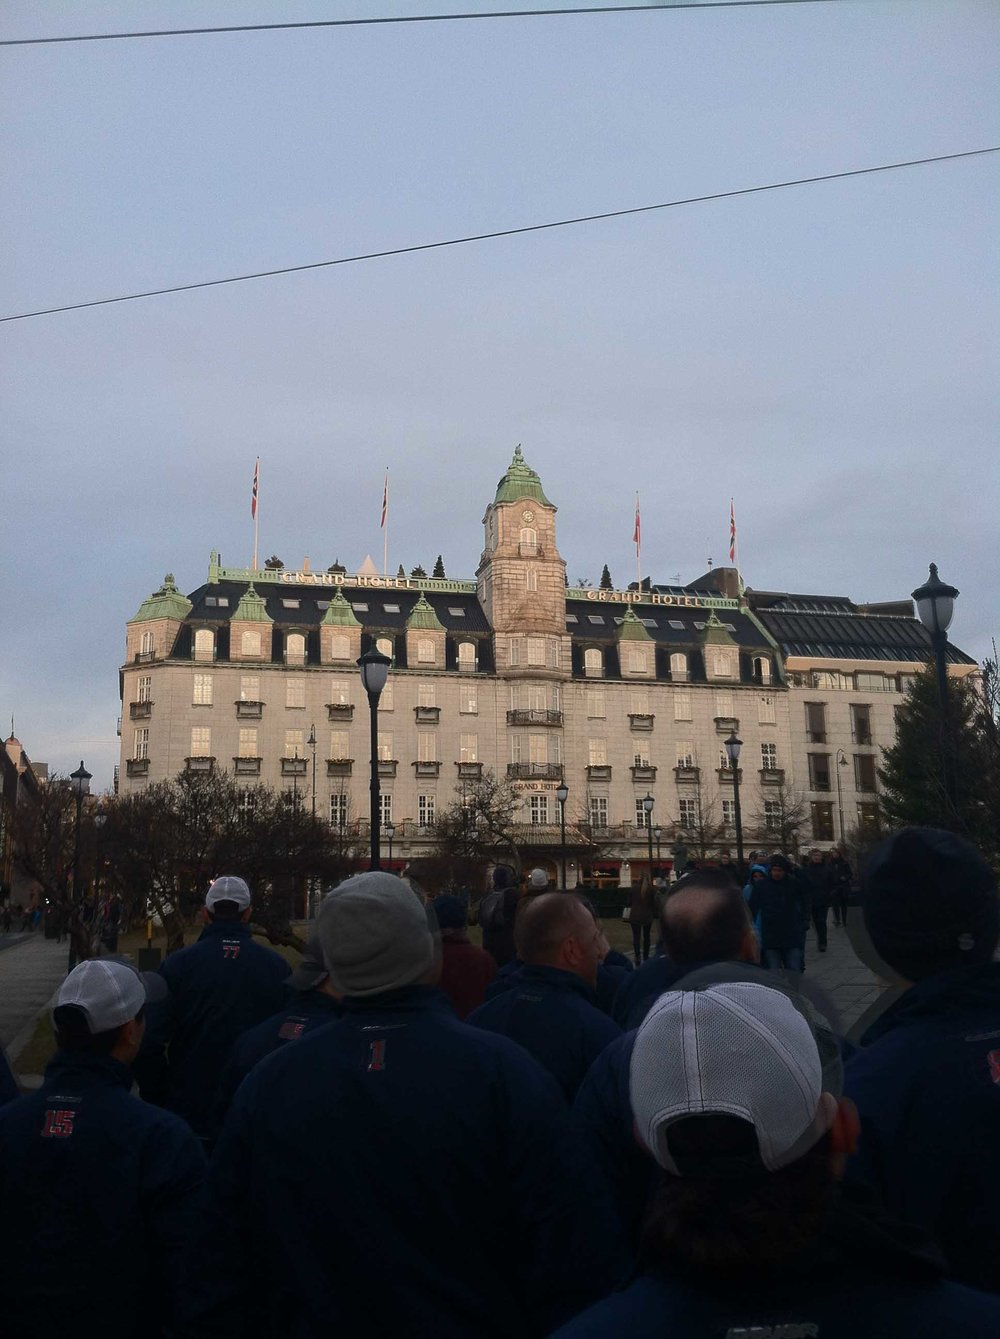 Captain Julian Kell and the ACHA D3 Select Team took in the sights in Oslow, including the Grand Hotel, which hosts the annual Nobel Peace Prize ceremony.